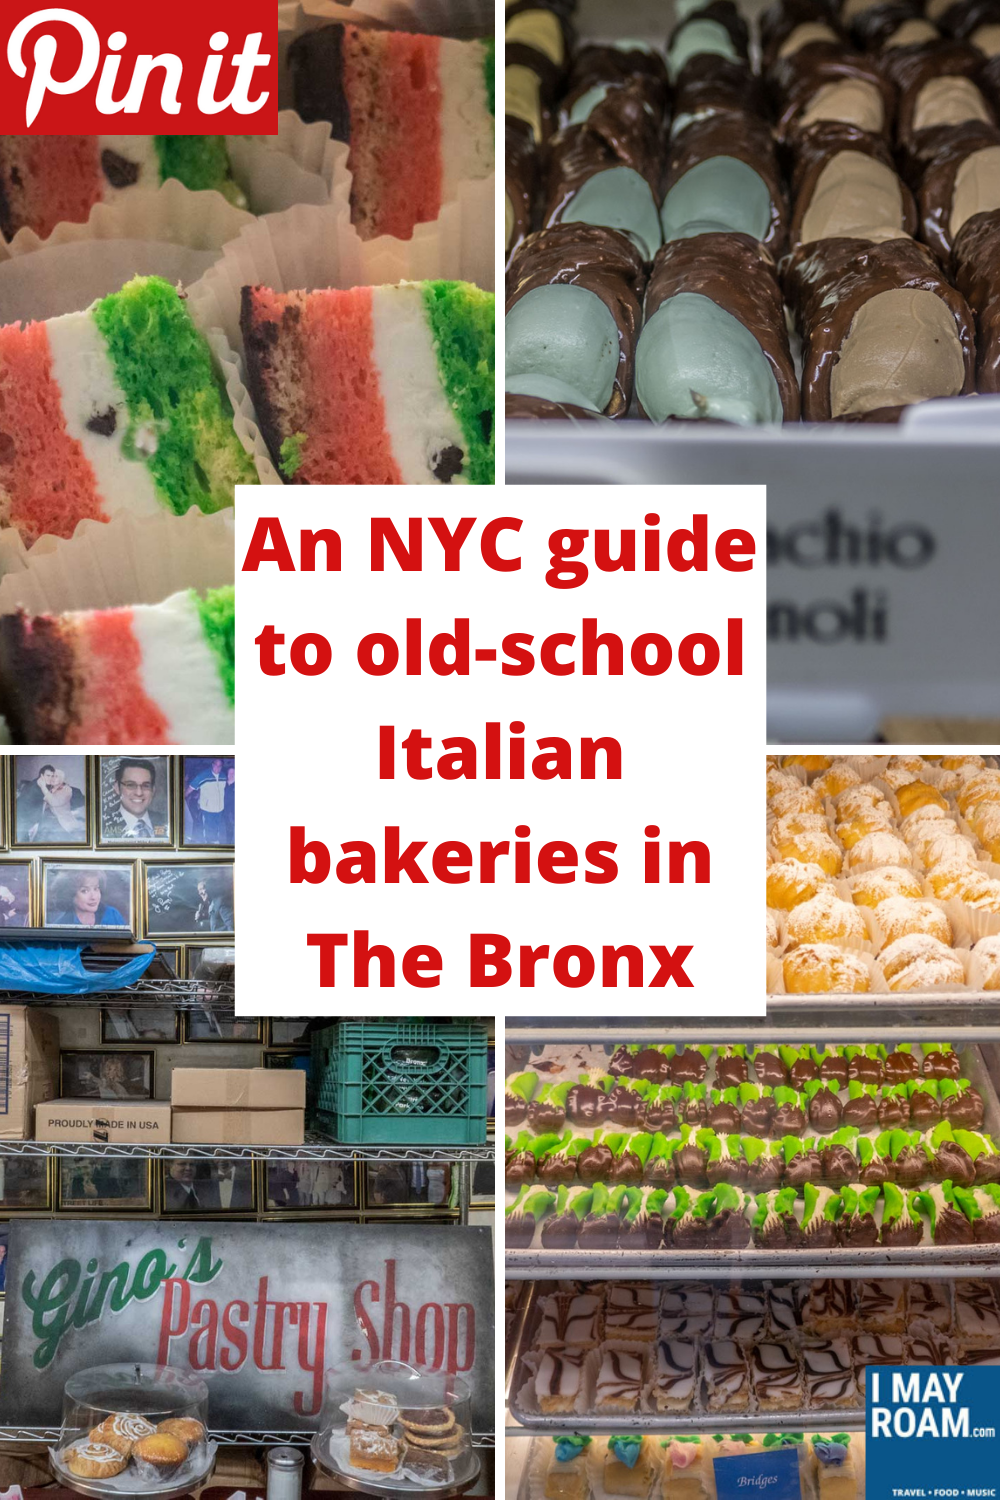 Pinterest An NYC guide to old-school Italian bakeries in The Bronx